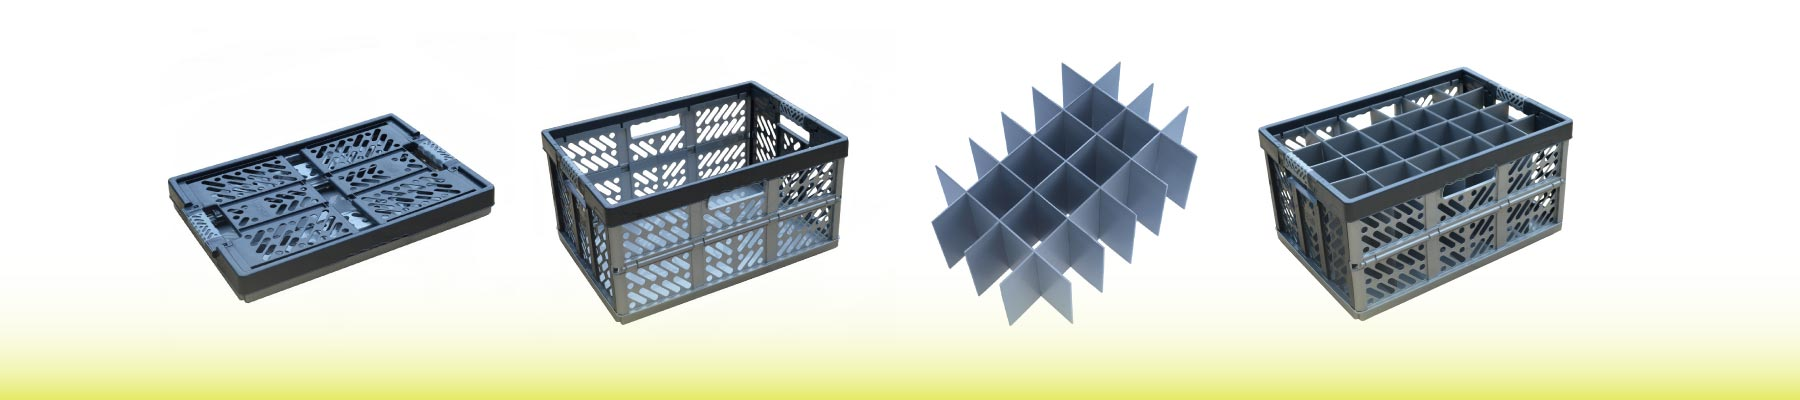 Folding Crate, Collapsible Storage Box, Glassware Storage, Hampshire